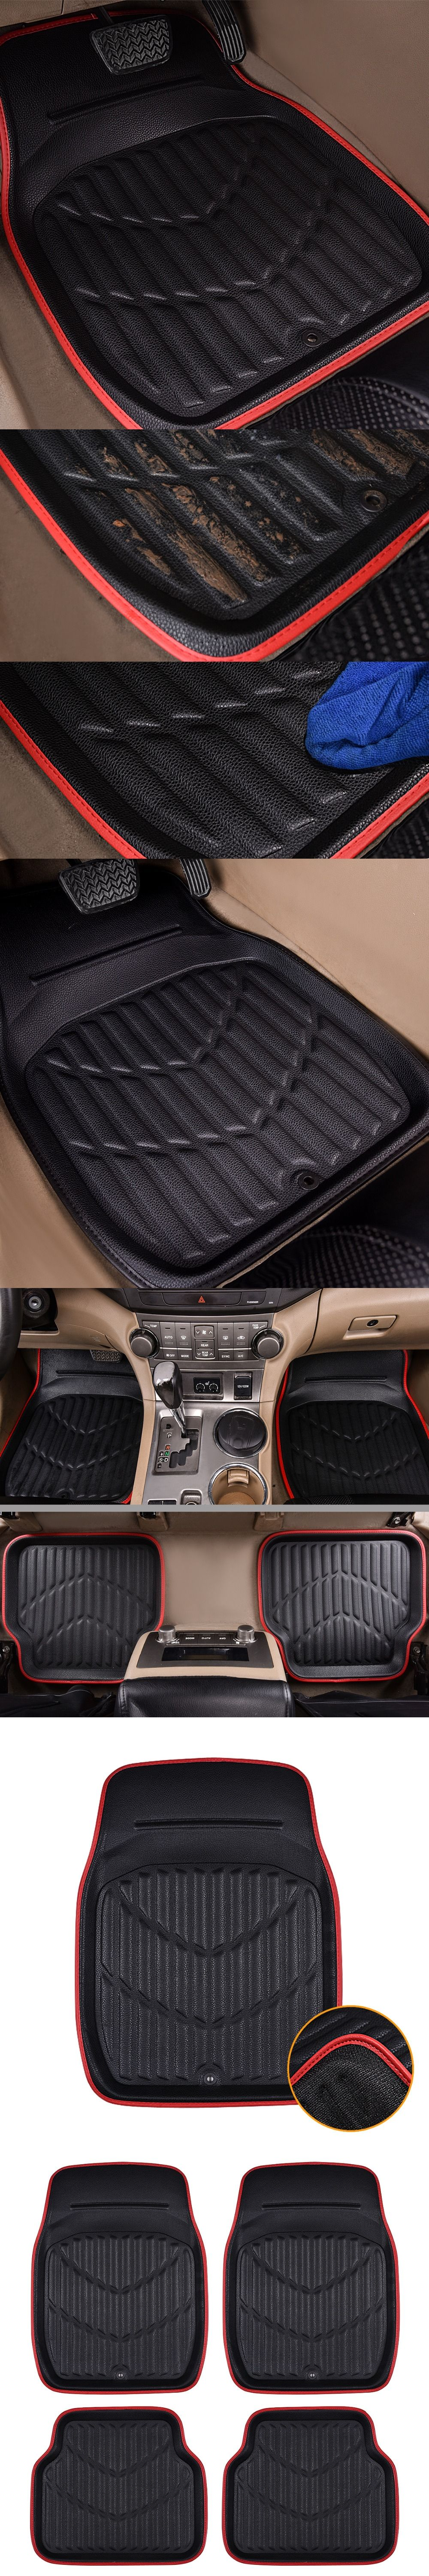 floor burgundy duty shop for combo mat bestfh product car mats heavy dash auto black